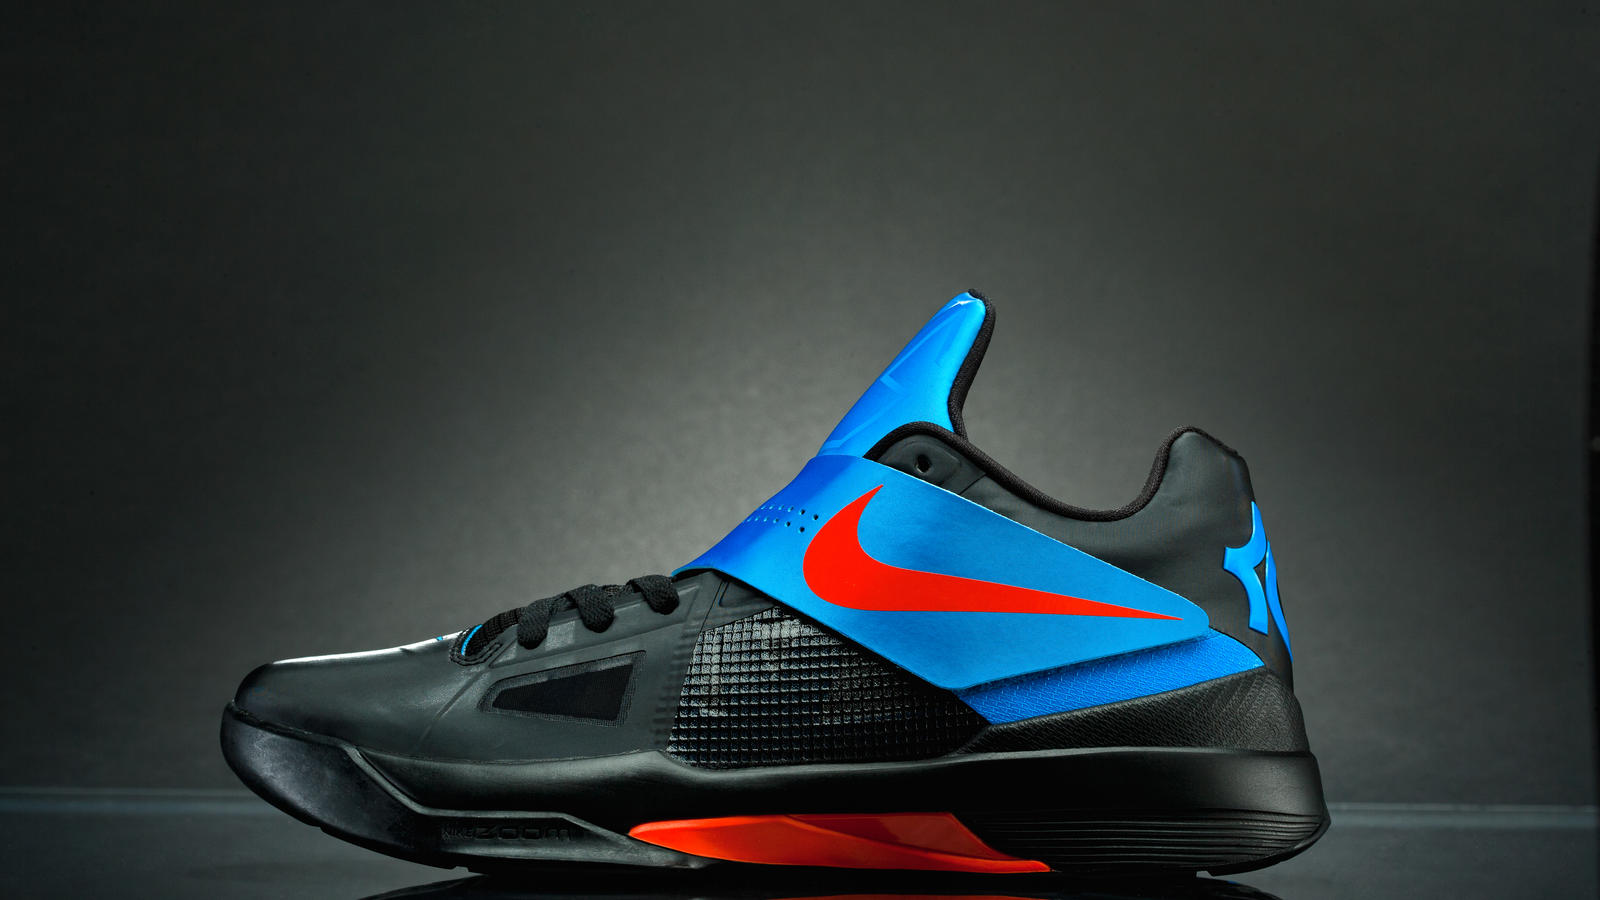 premium selection cdb2b fd0eb Launching December 3, the Nike Zoom KD IV features the new Adaptive Fit  system, Hyperfuse construction and a Zoom Air unit – a versatile combination  for one ...